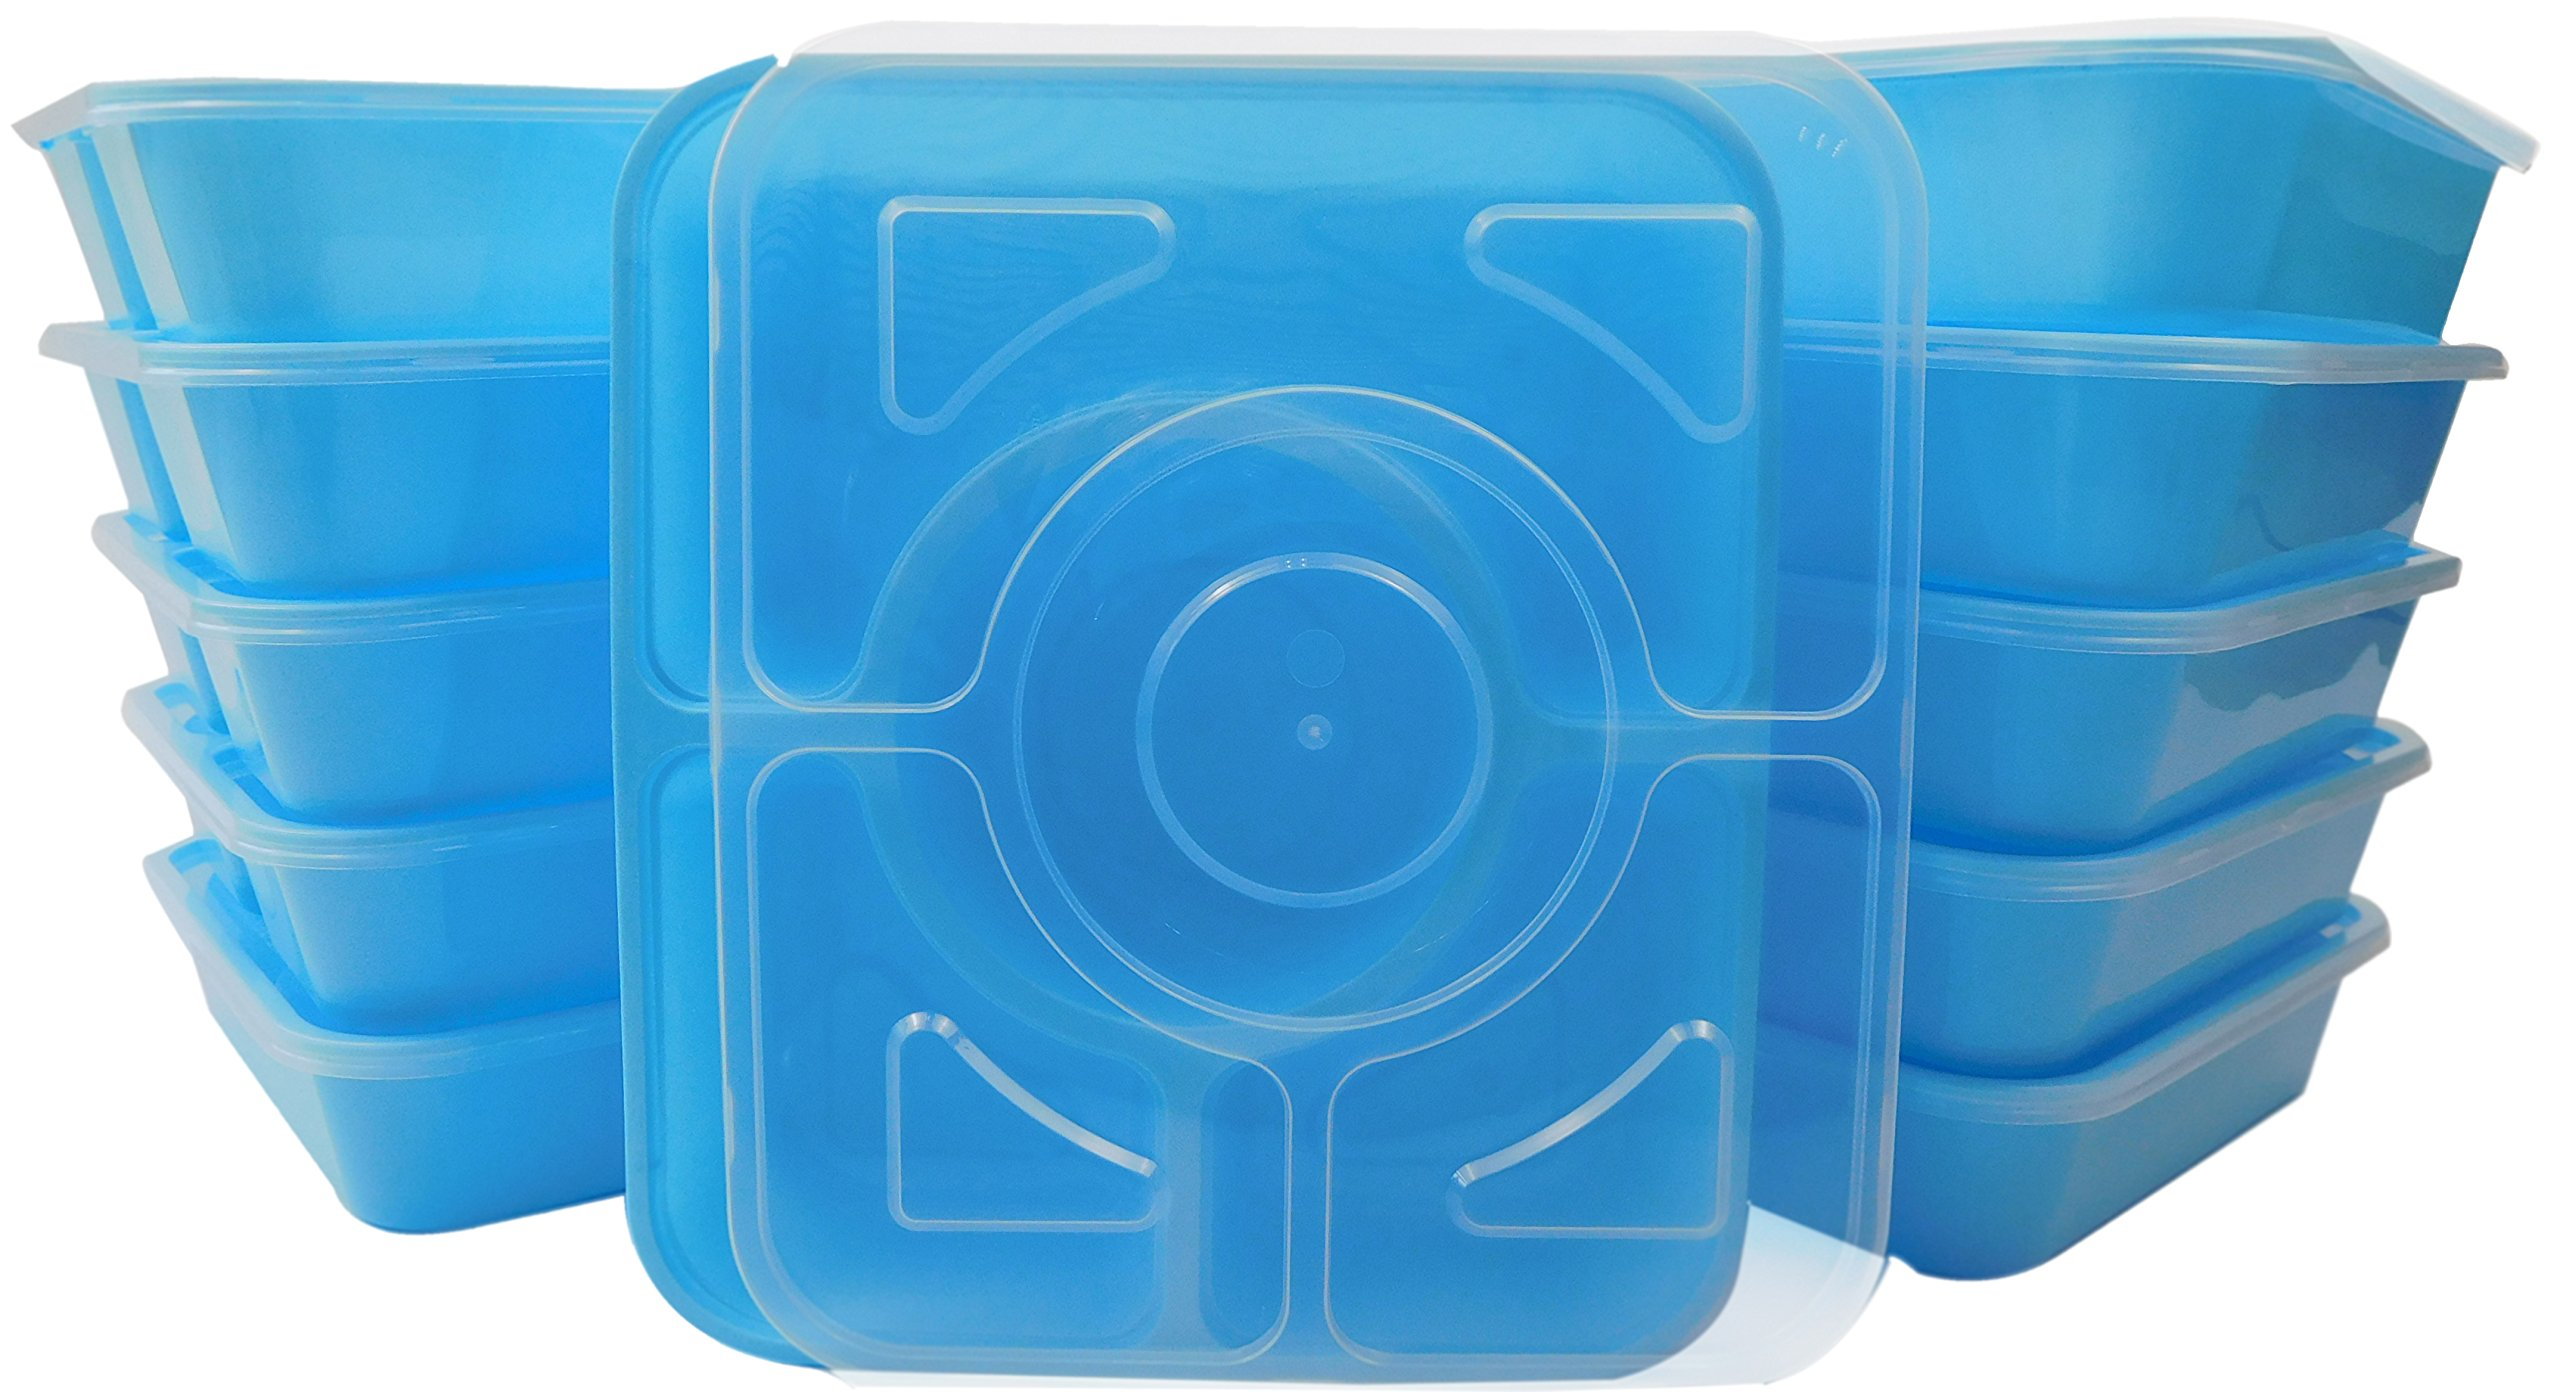 Table To Go 240-Pack Bento Lunch Boxes with Lids (4 Compartment/ 36 oz) | Microwaveable, Dishwasher & Freezer Safe Meal Prep Containers | Reusable Dish Set for Prepping, Portion Control & More (Blue)